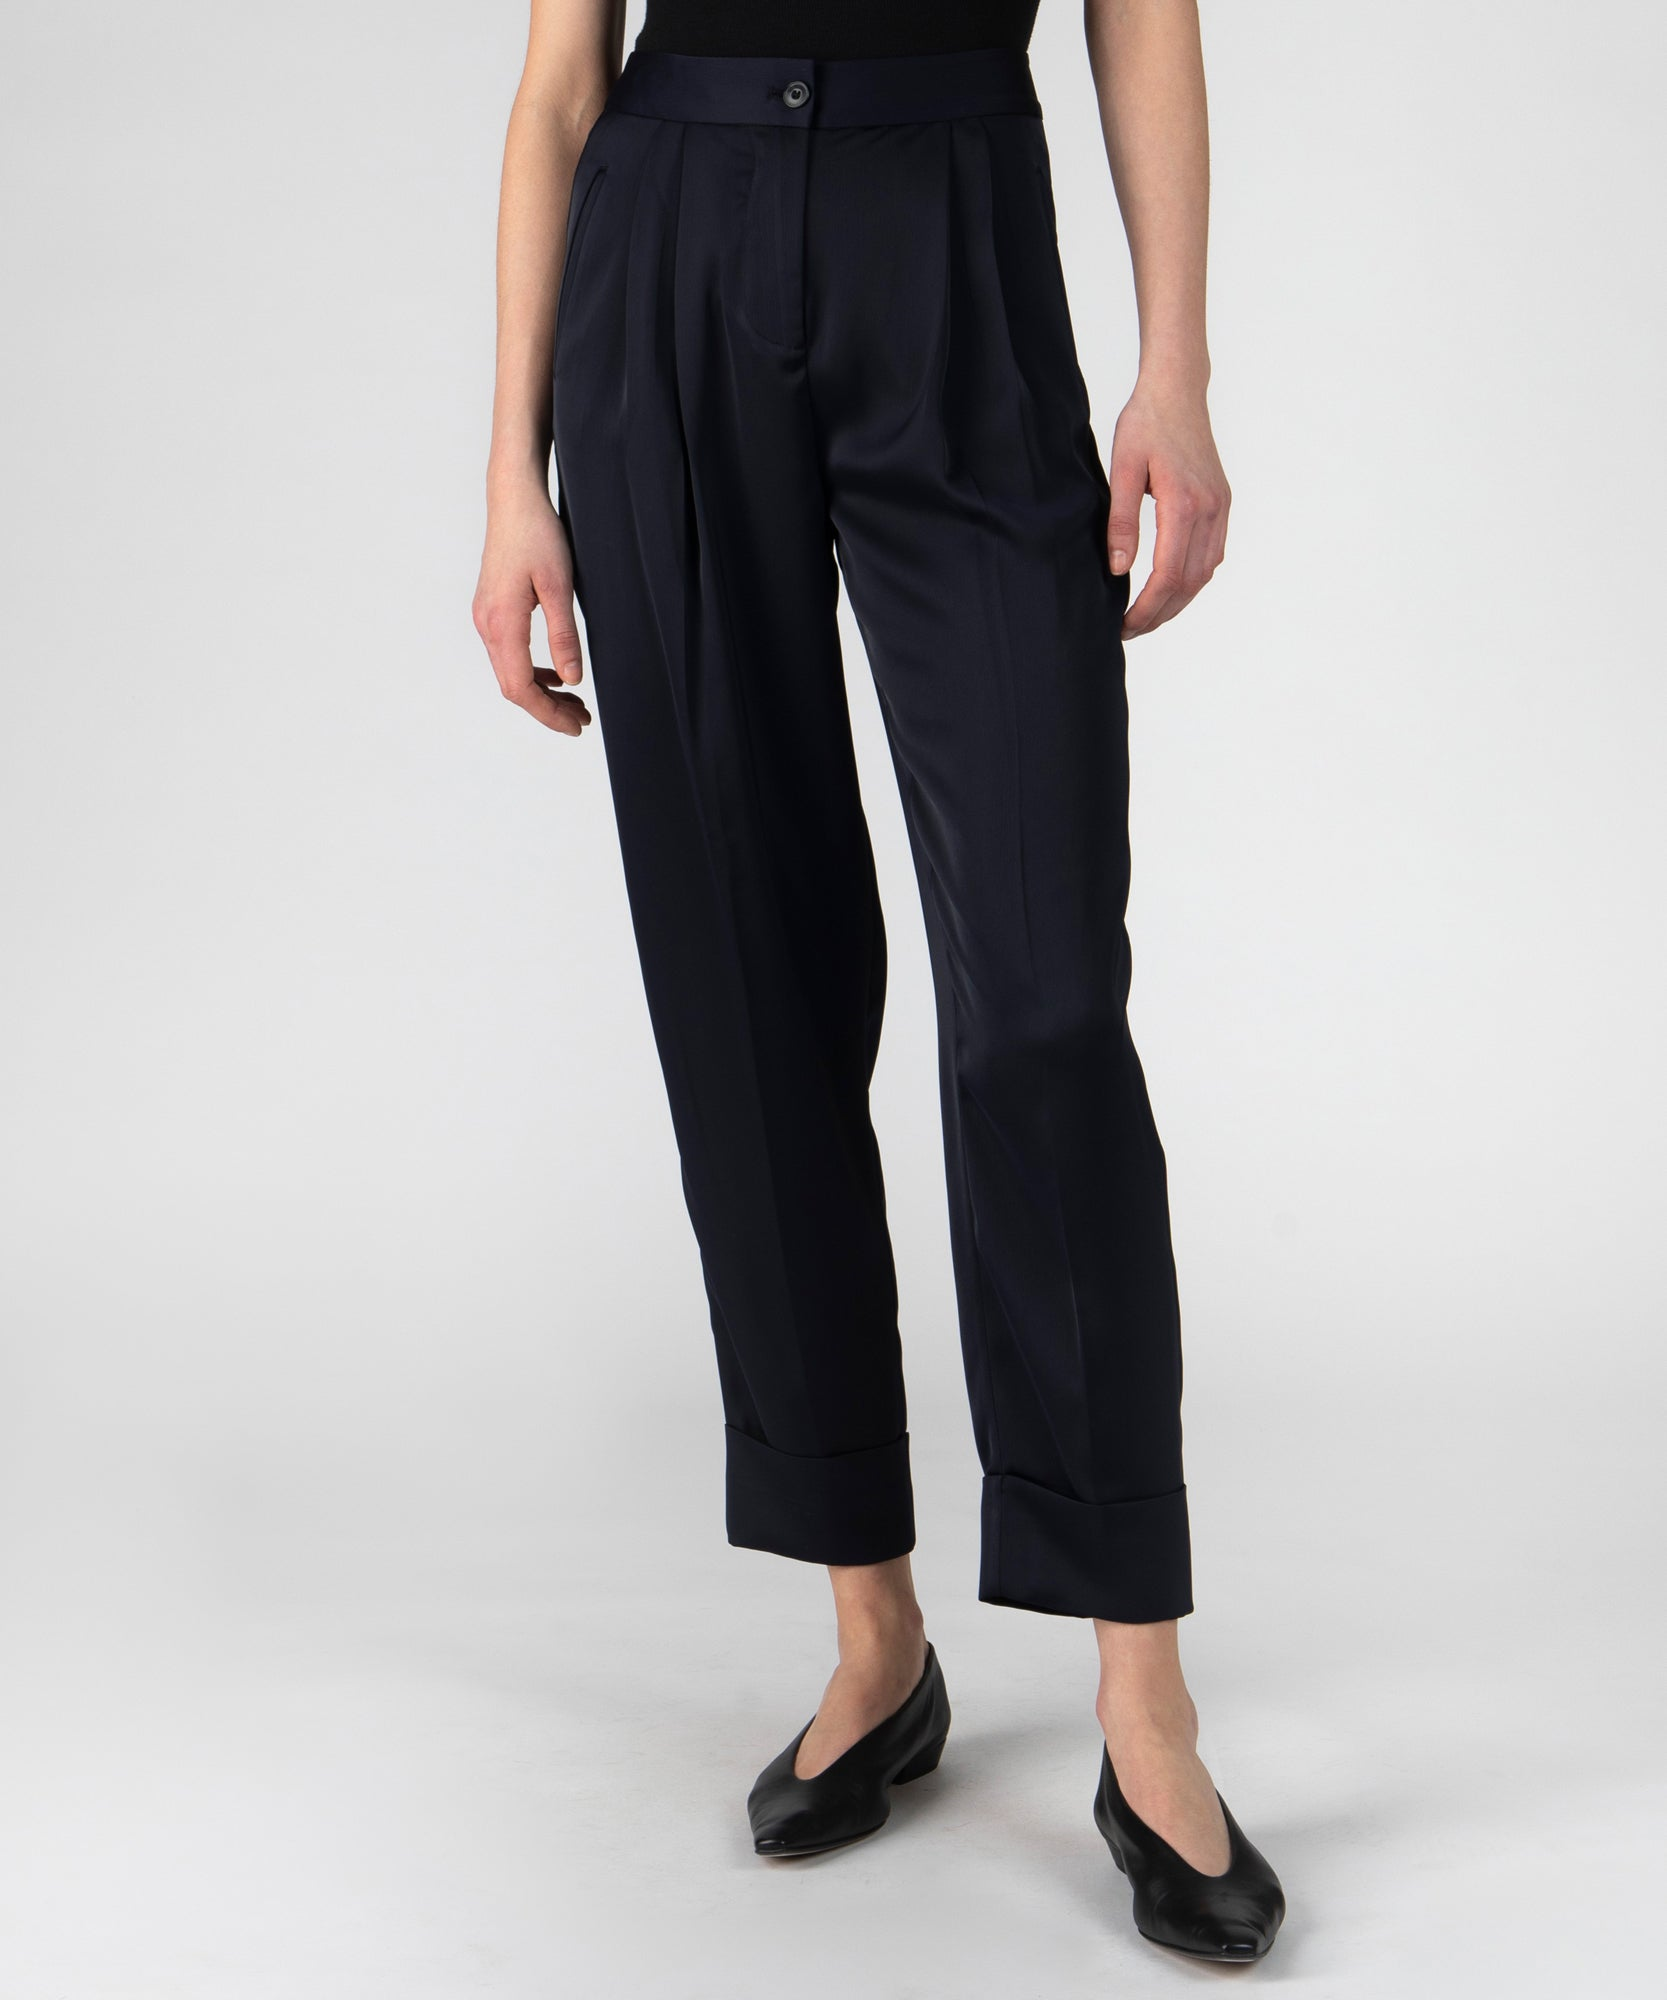 Deep Navy Sateen Tailored Pants - Women's Luxe Pants by ATM Anthony Thomas Melillo